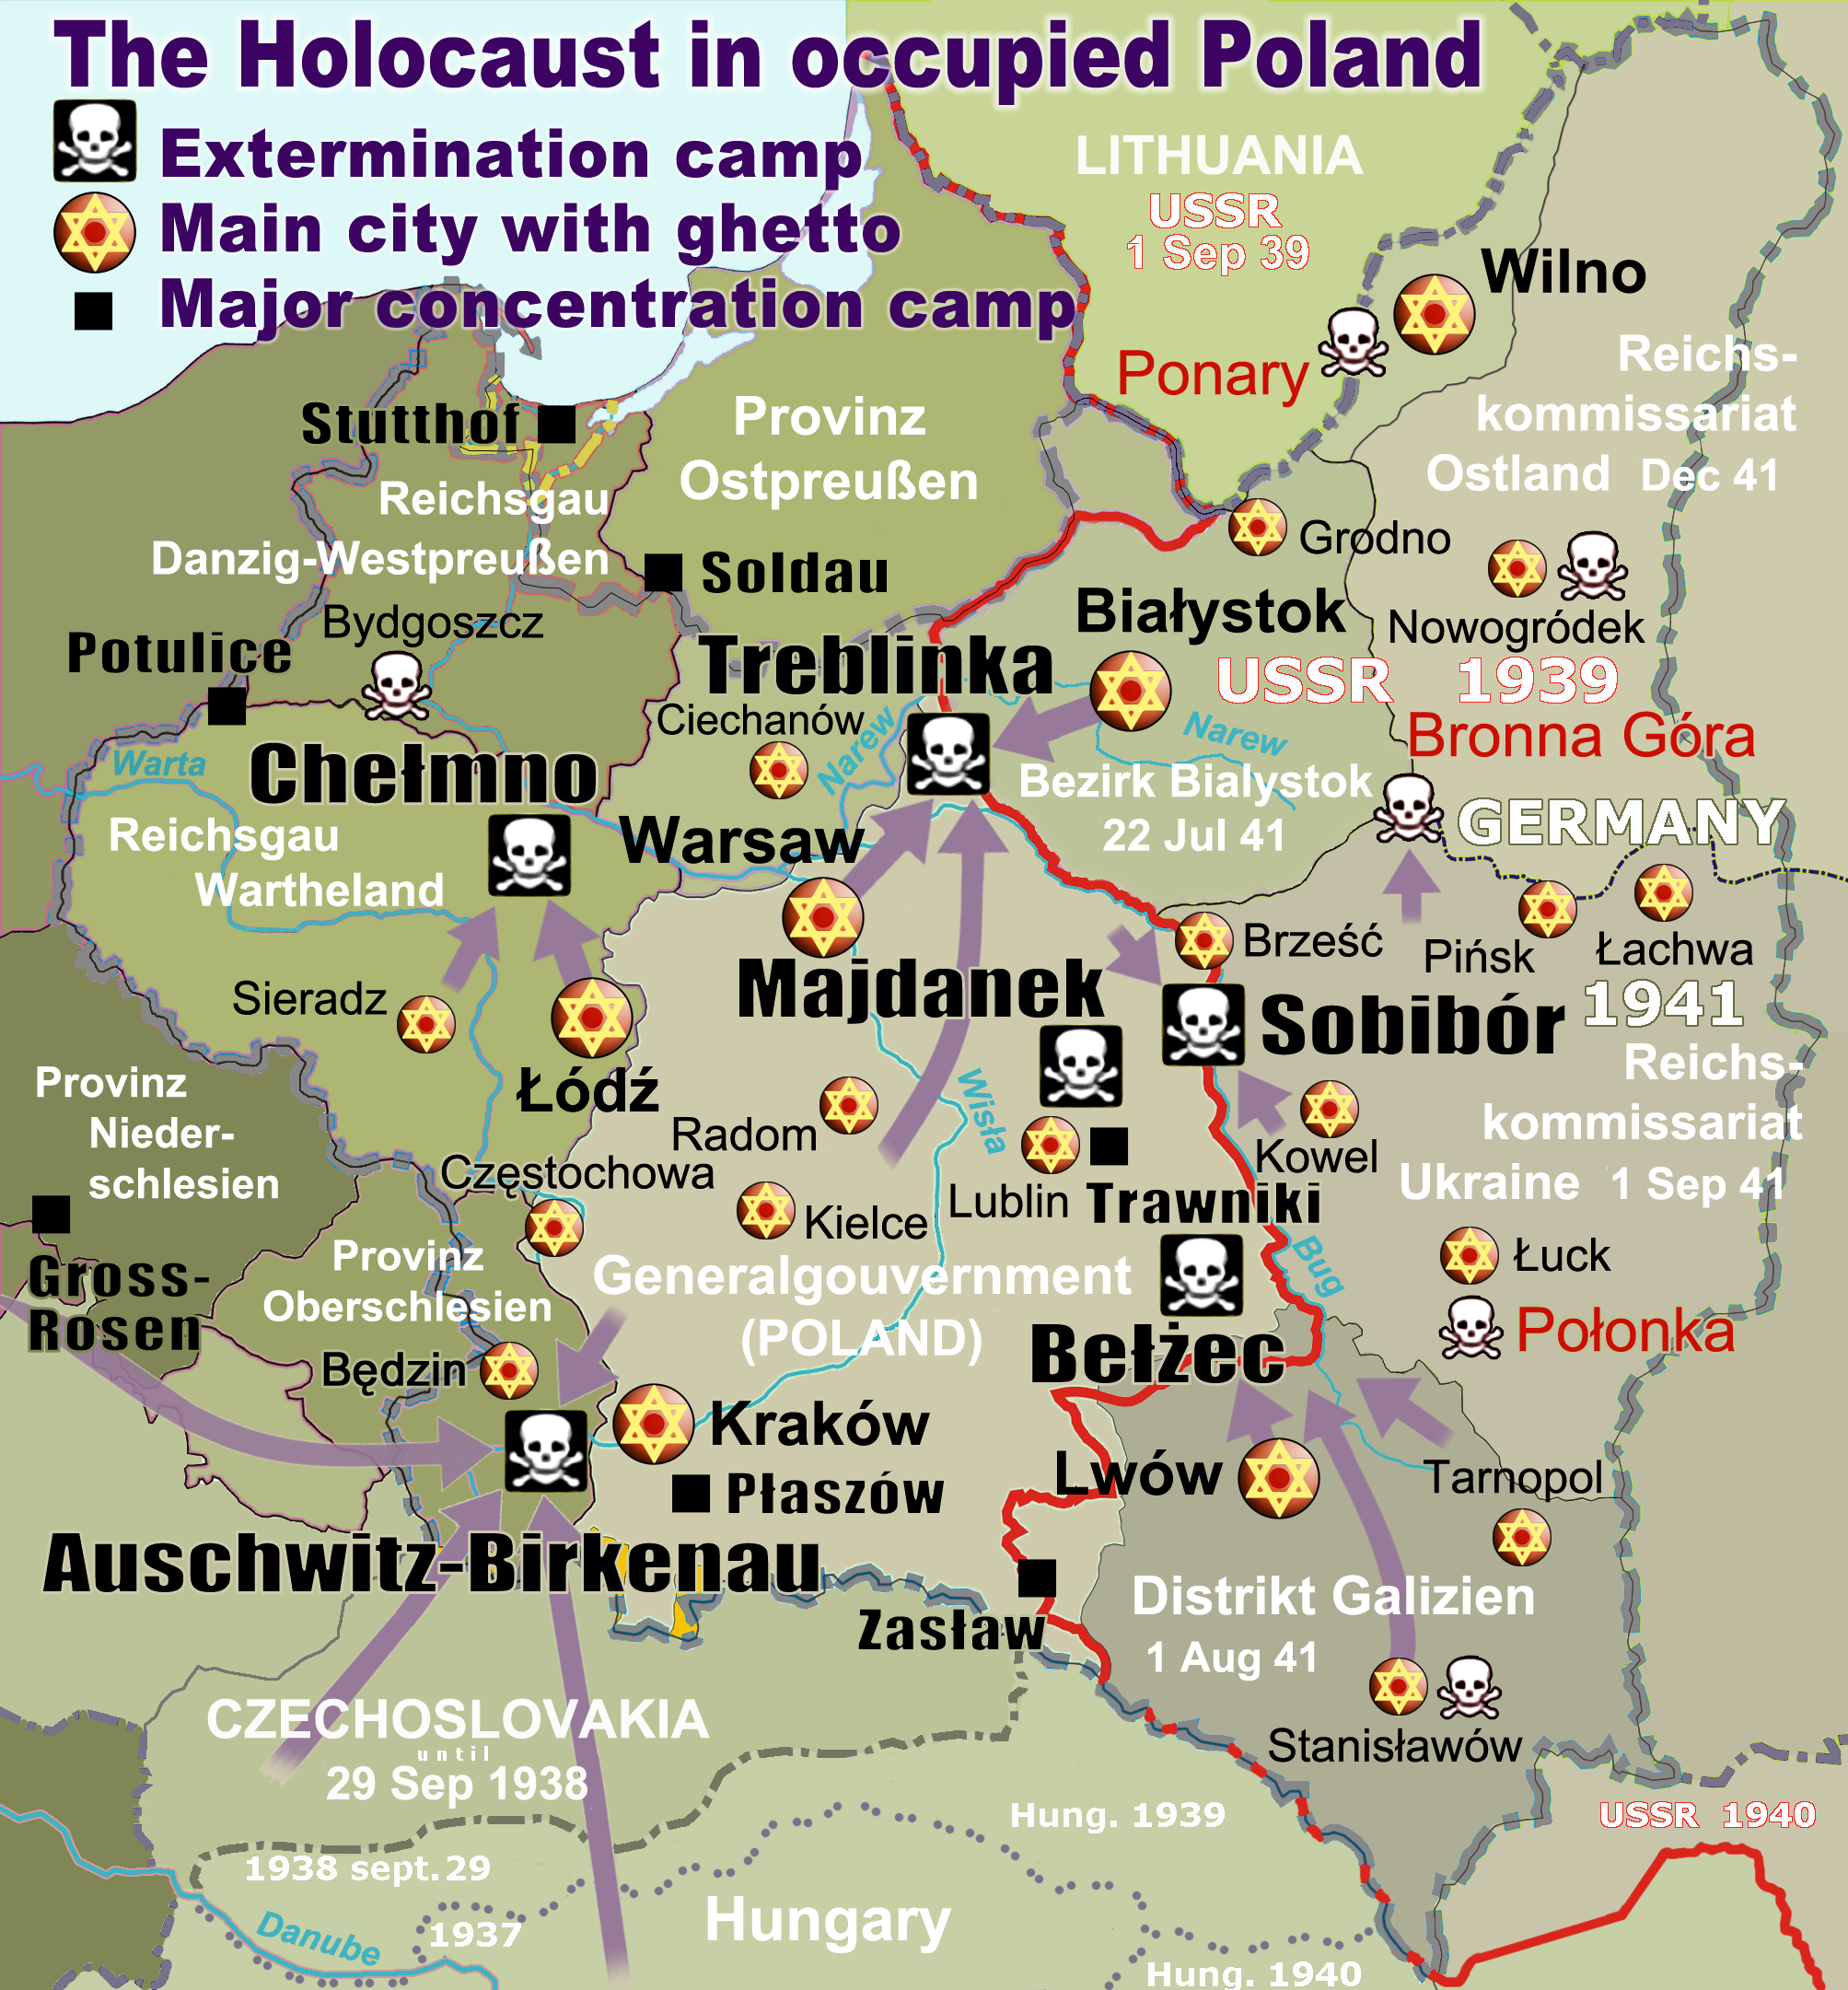 File:WW2-Holocaust-Poland.PNG